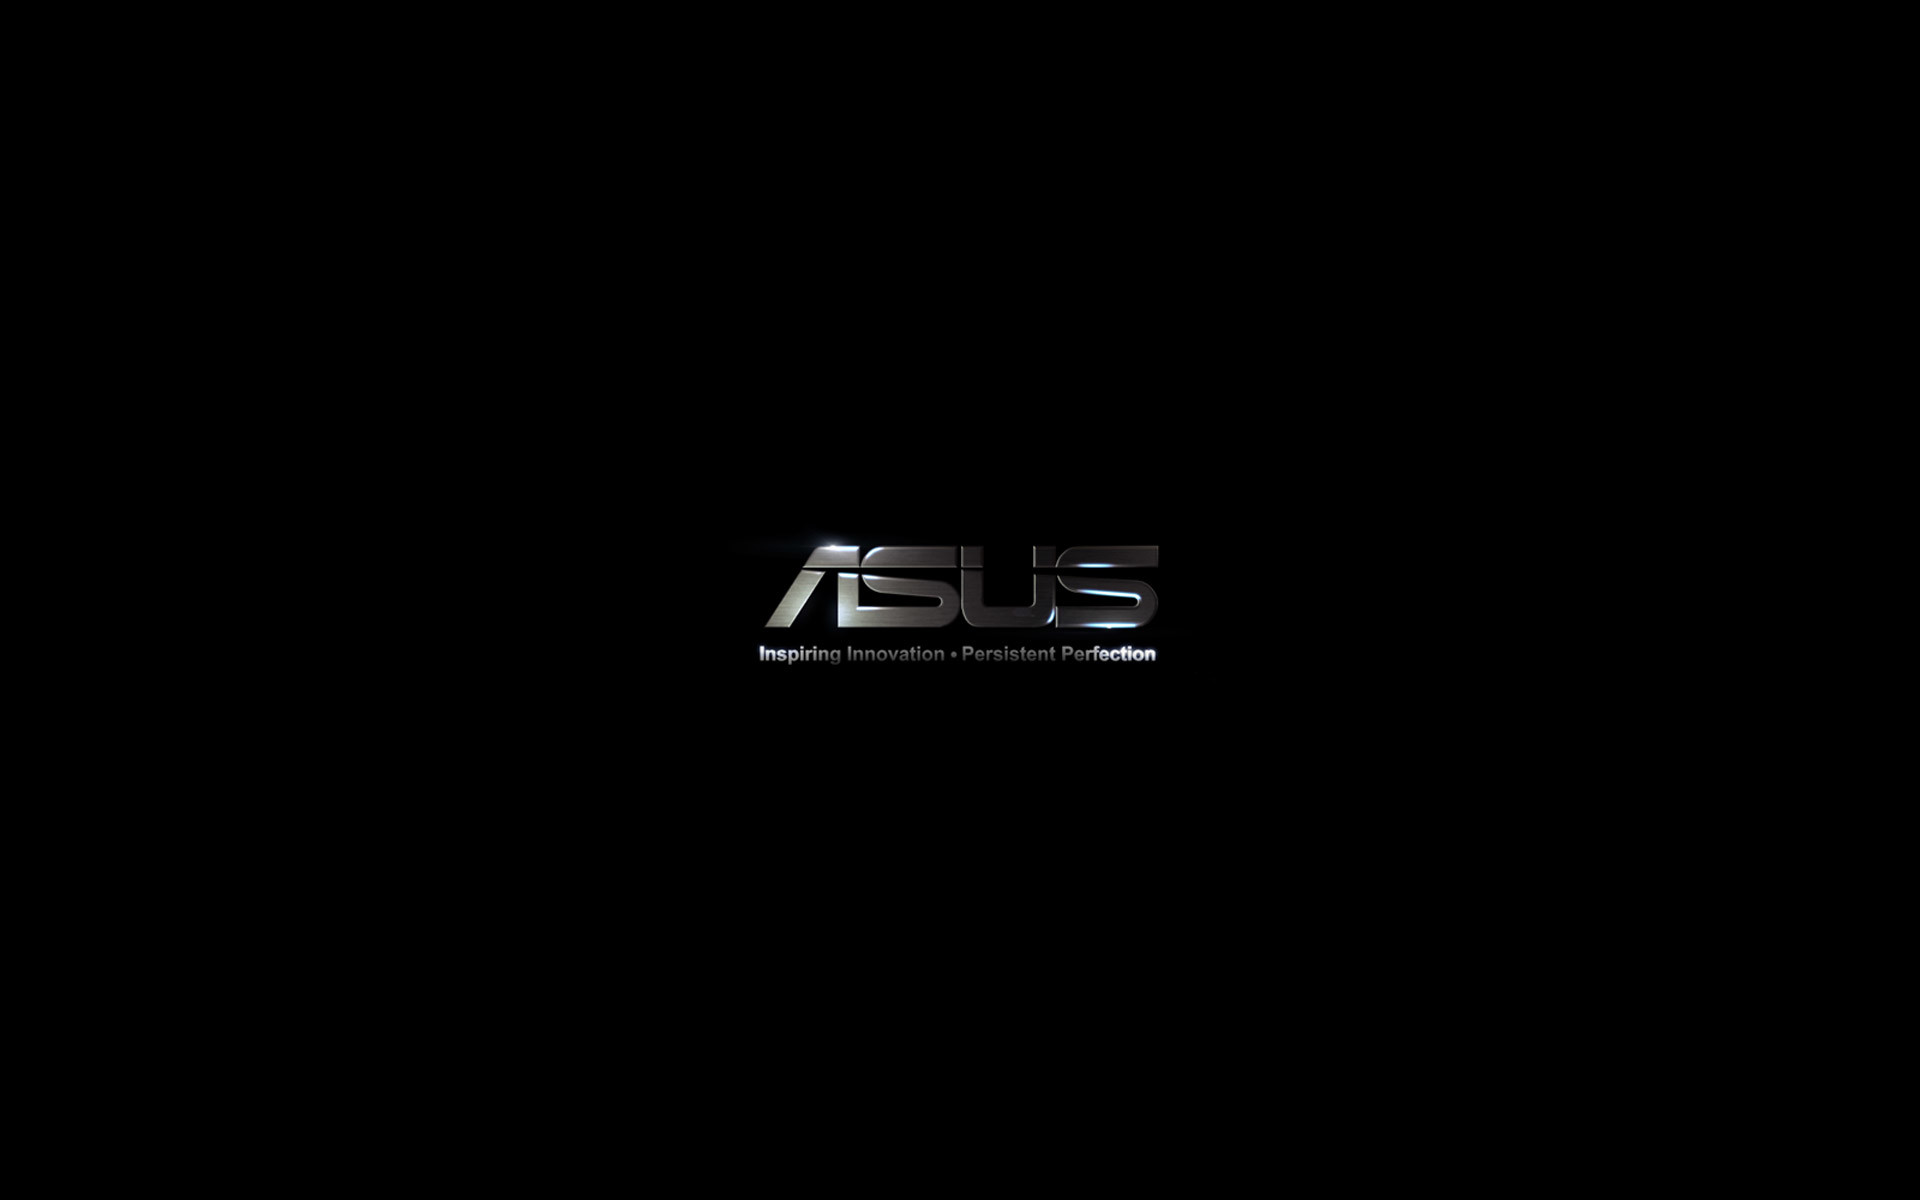 asus wallpaper full hd (86+ images)